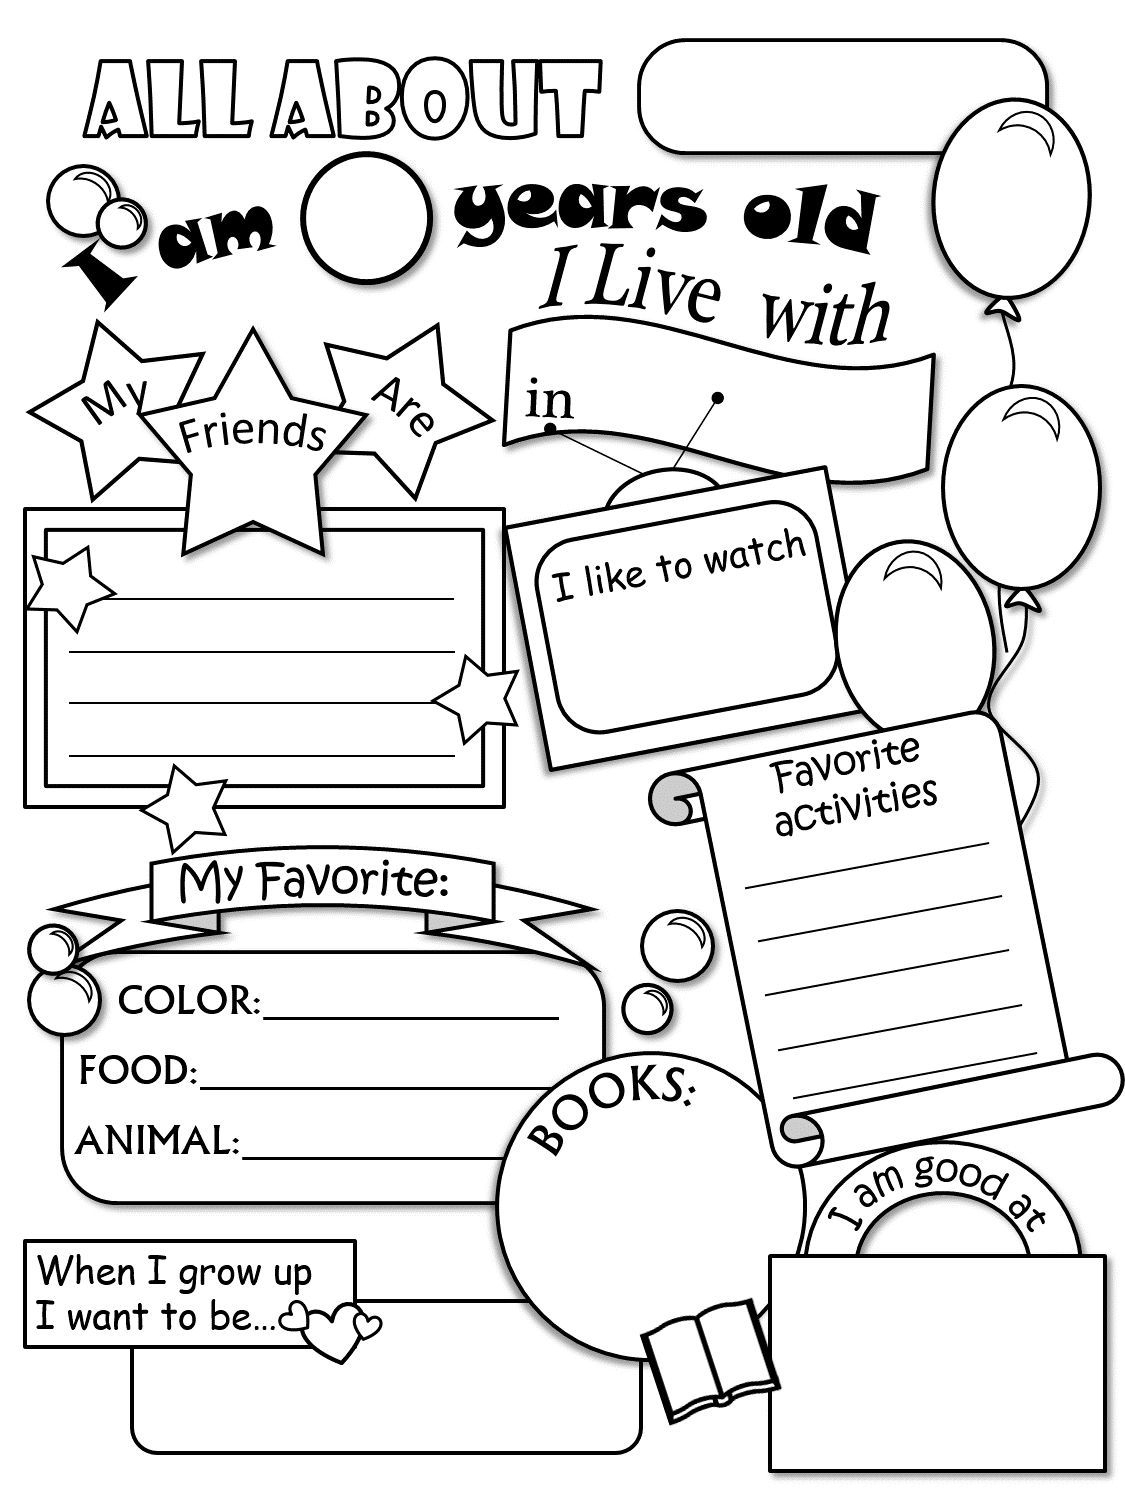 All About Me Worksheet Freebie - Cute! | Language Arts | Pinterest - Free Printable All About Me Worksheet